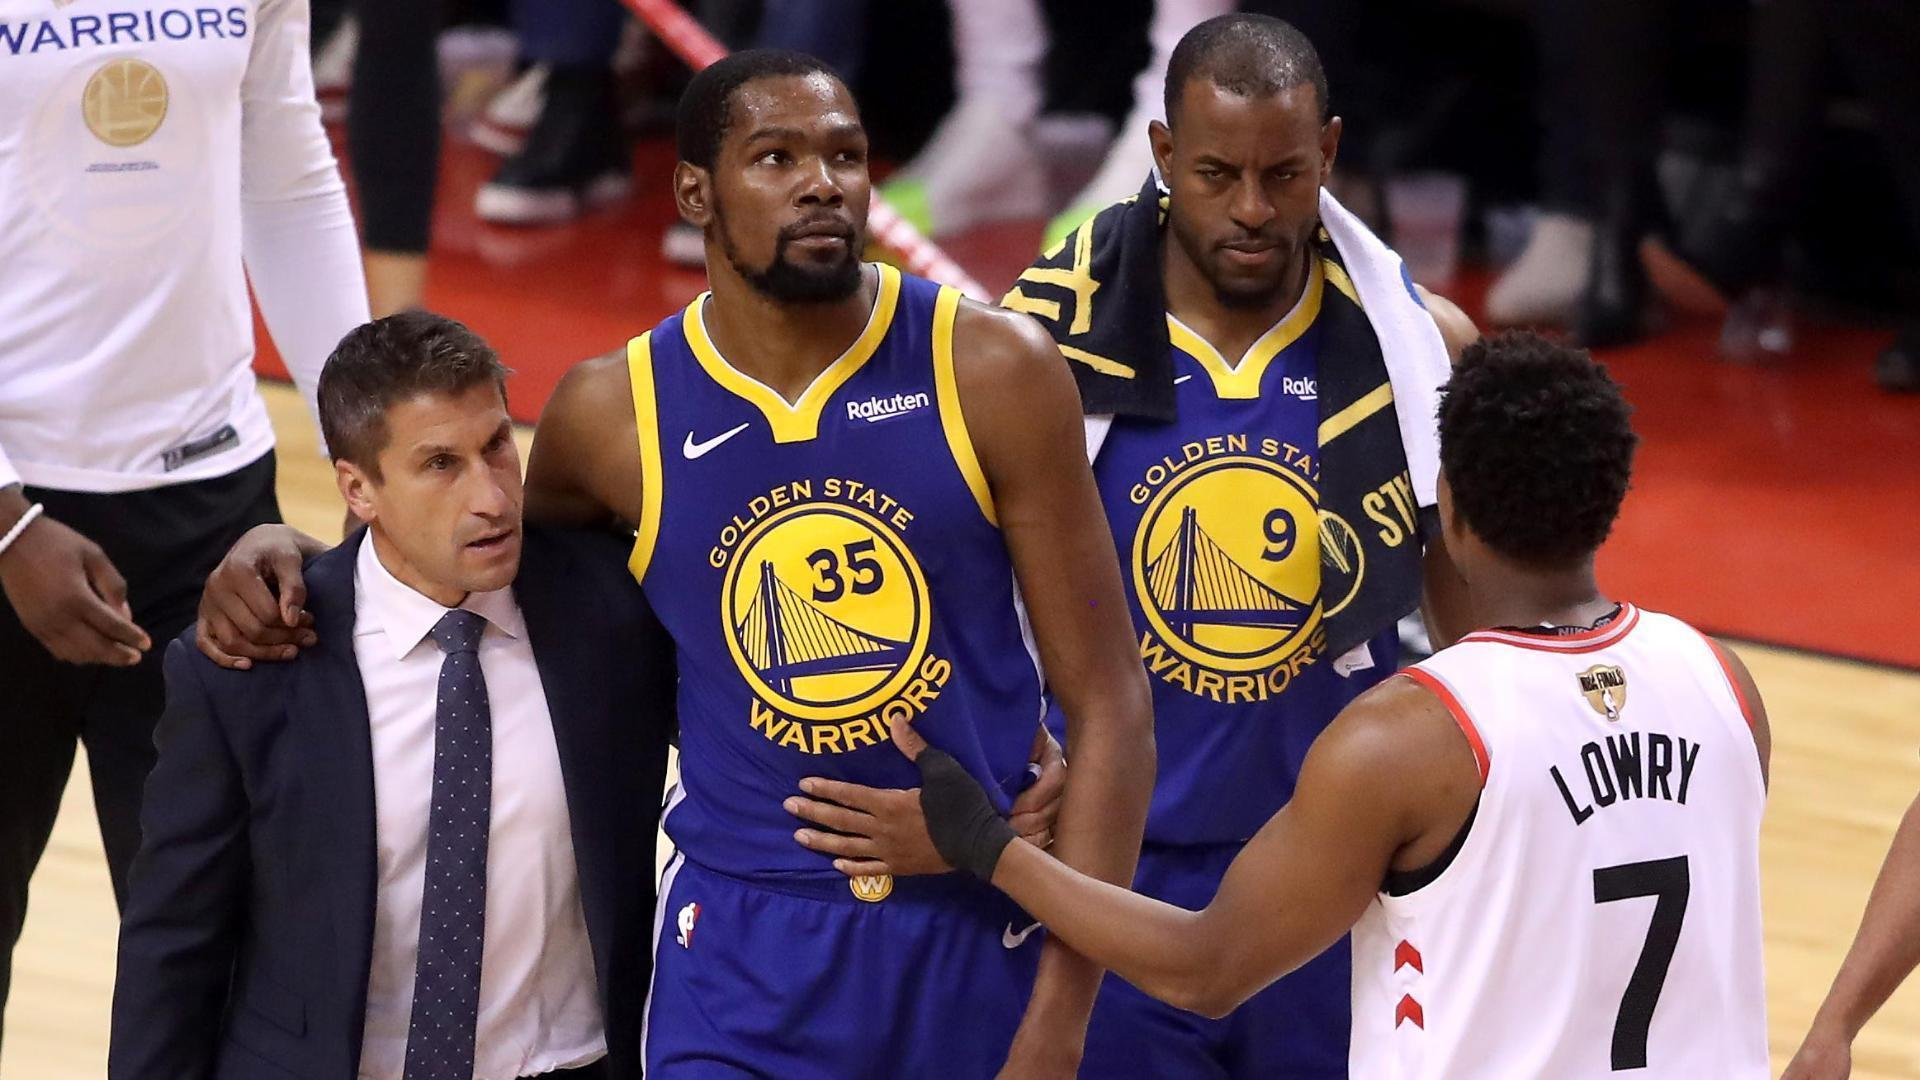 Warriors inspired in Game 5 by Durant injury